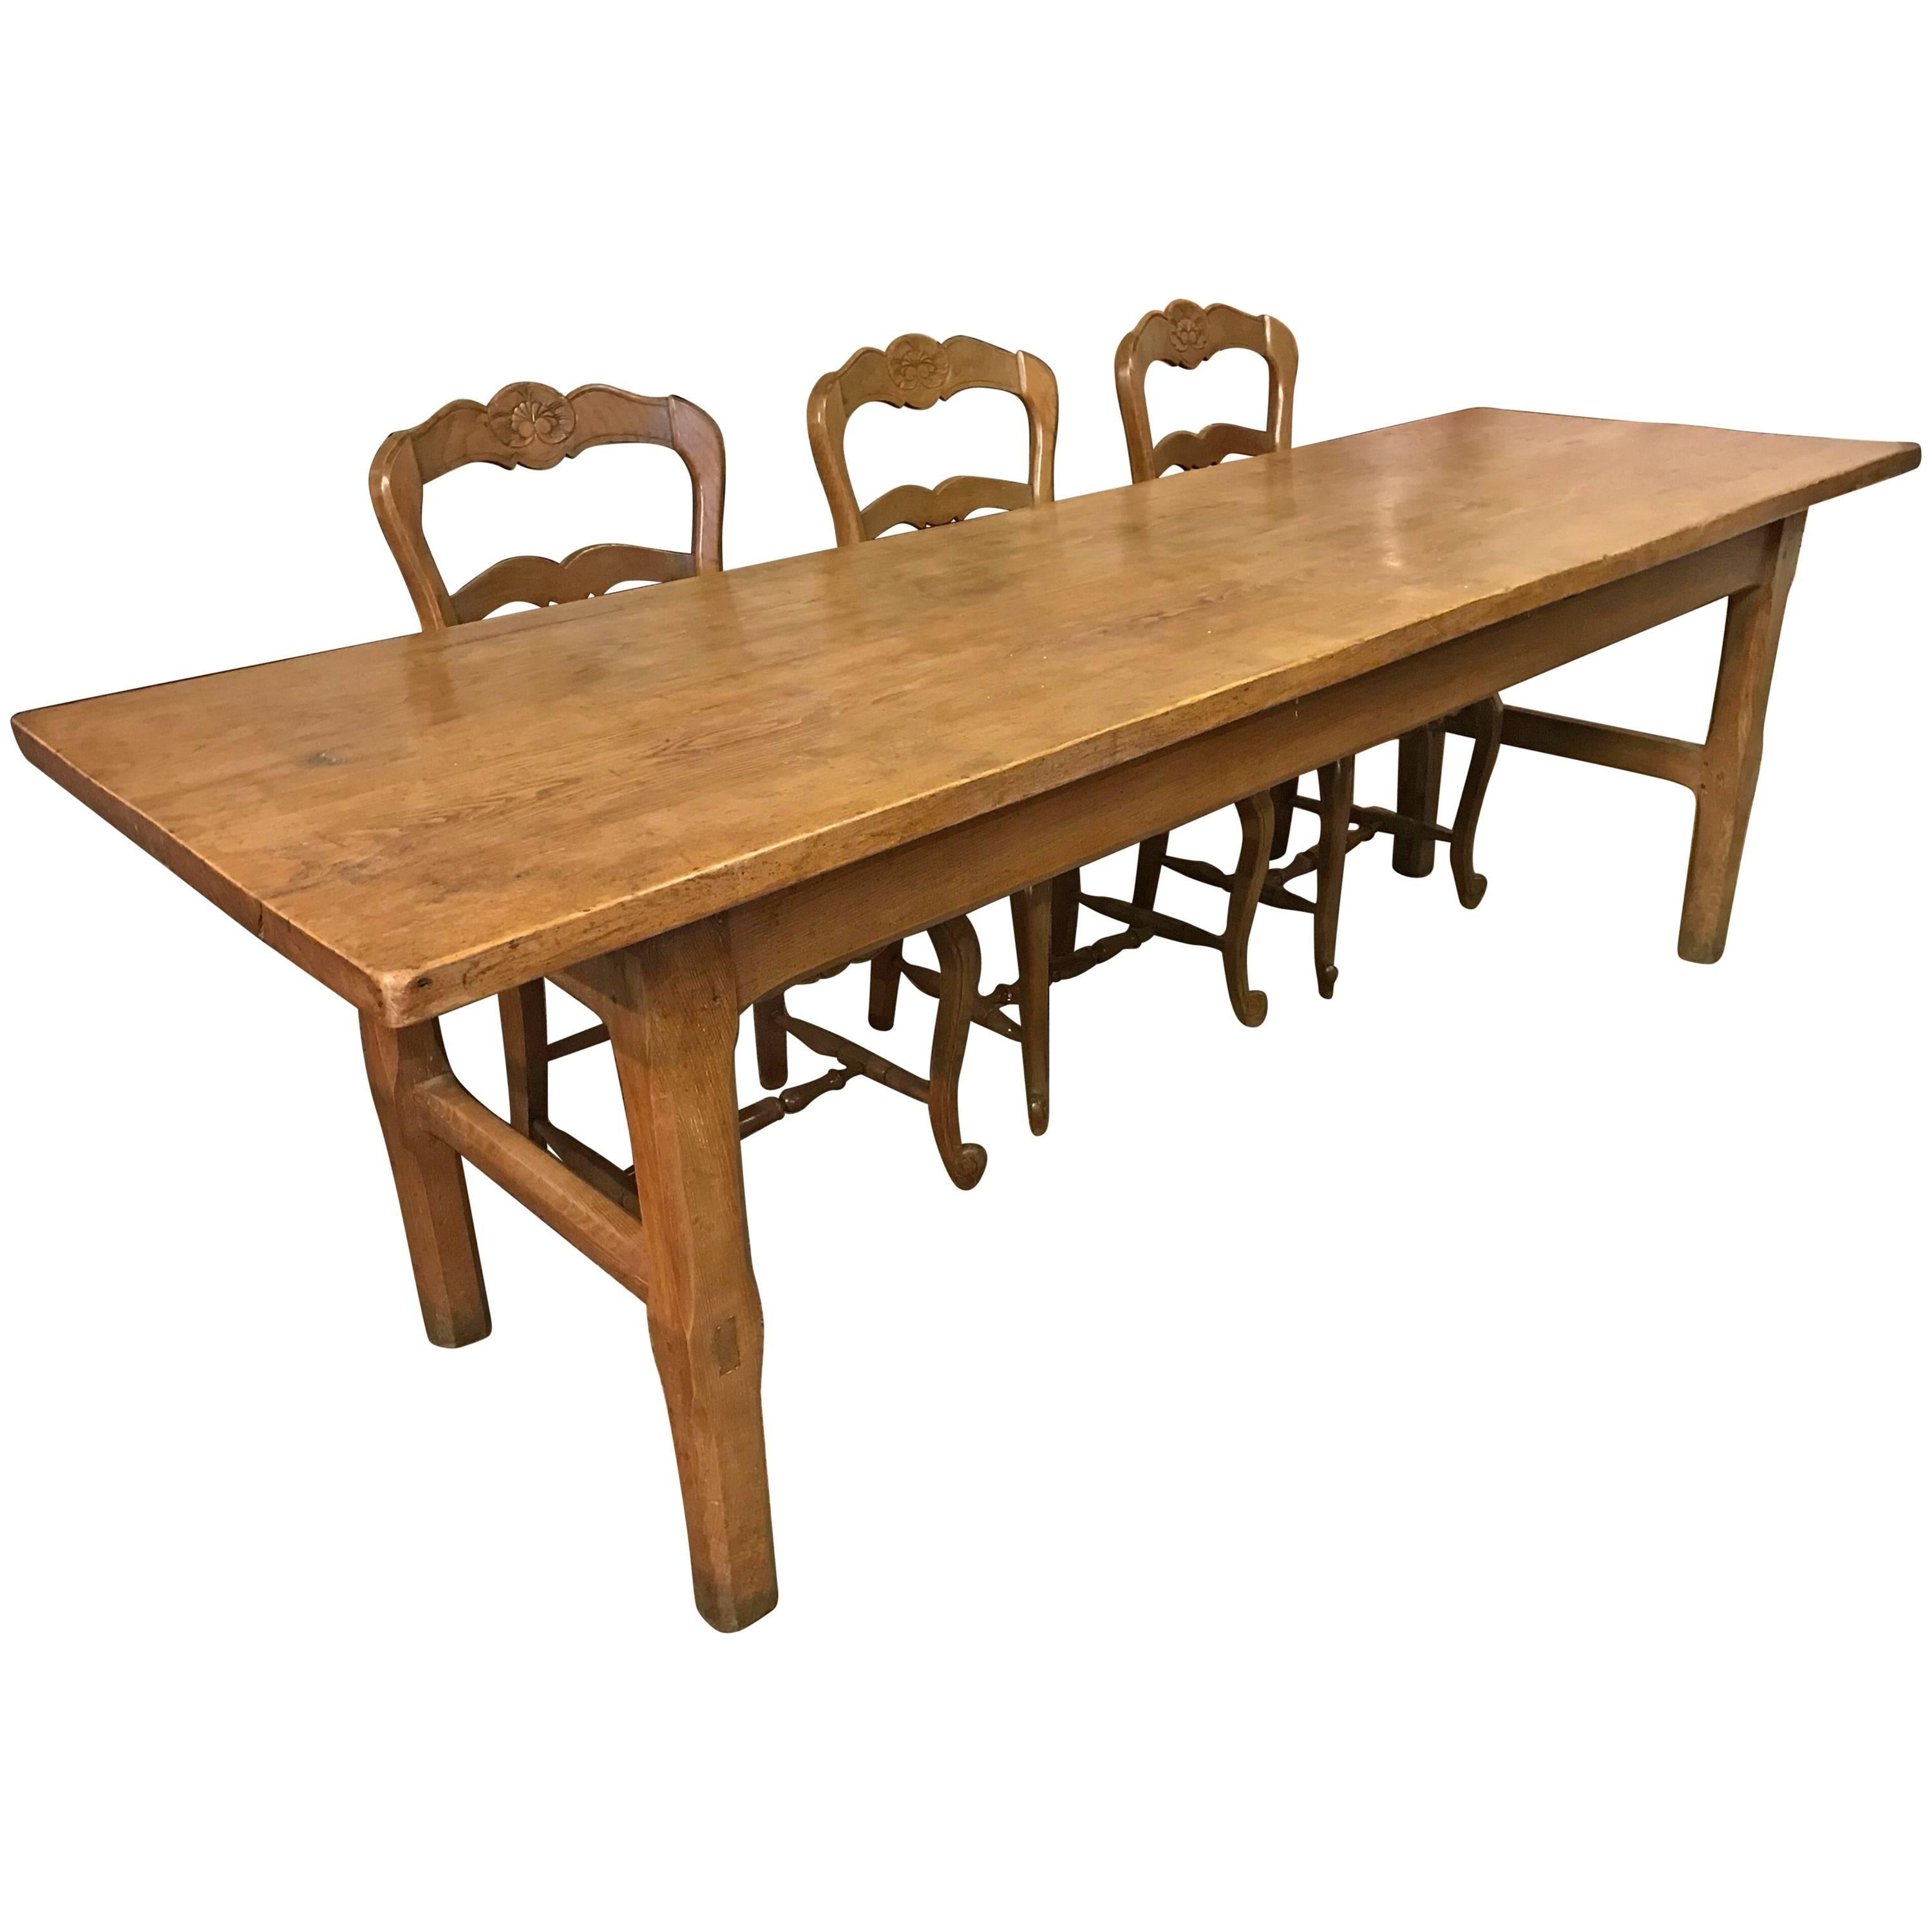 Ash French Farmhouse Table, Circa 1840